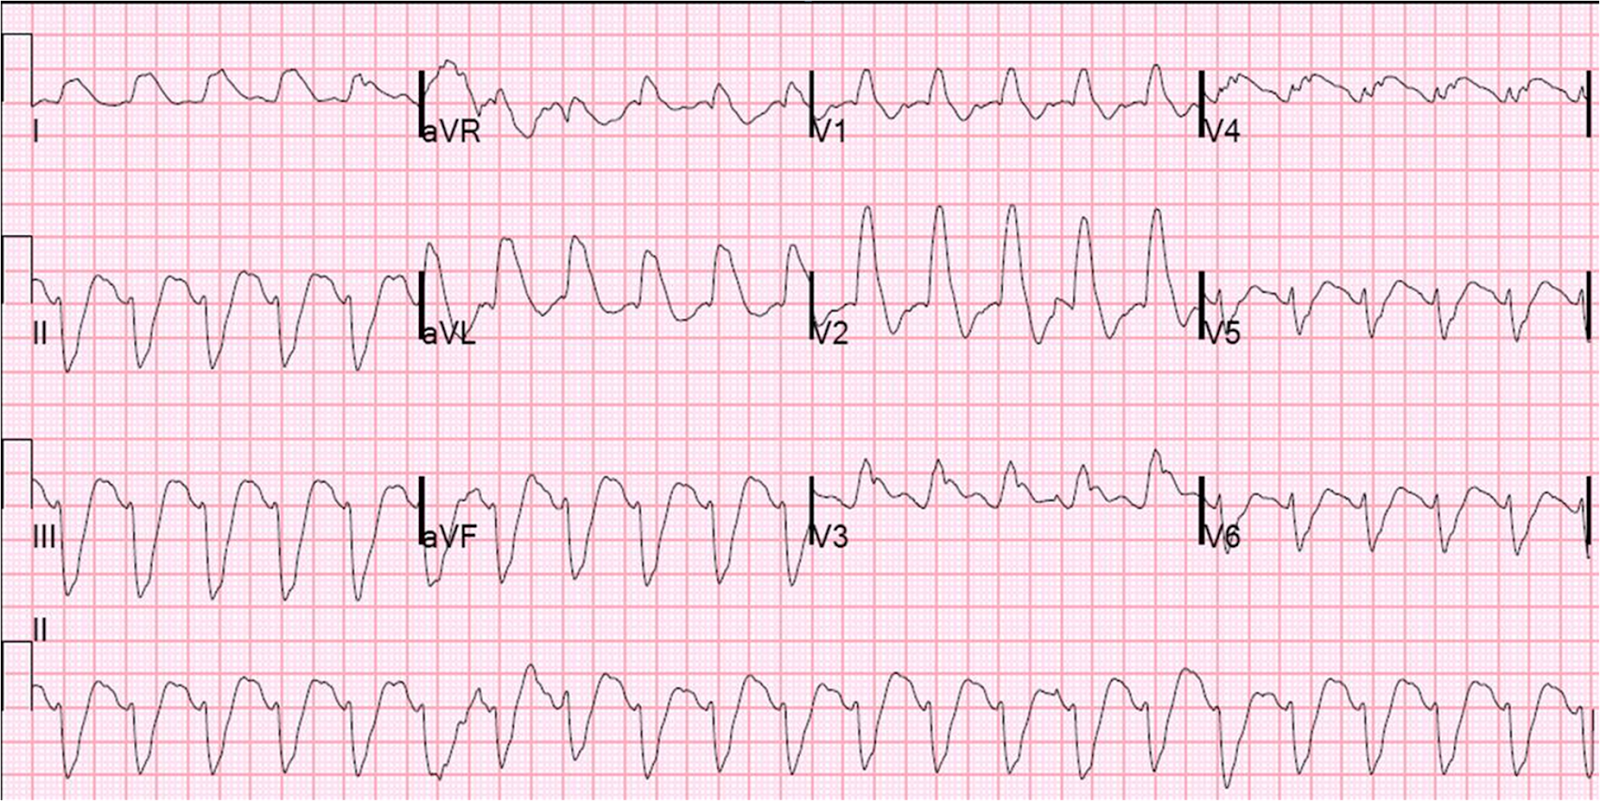 What does afib look like on a ekg